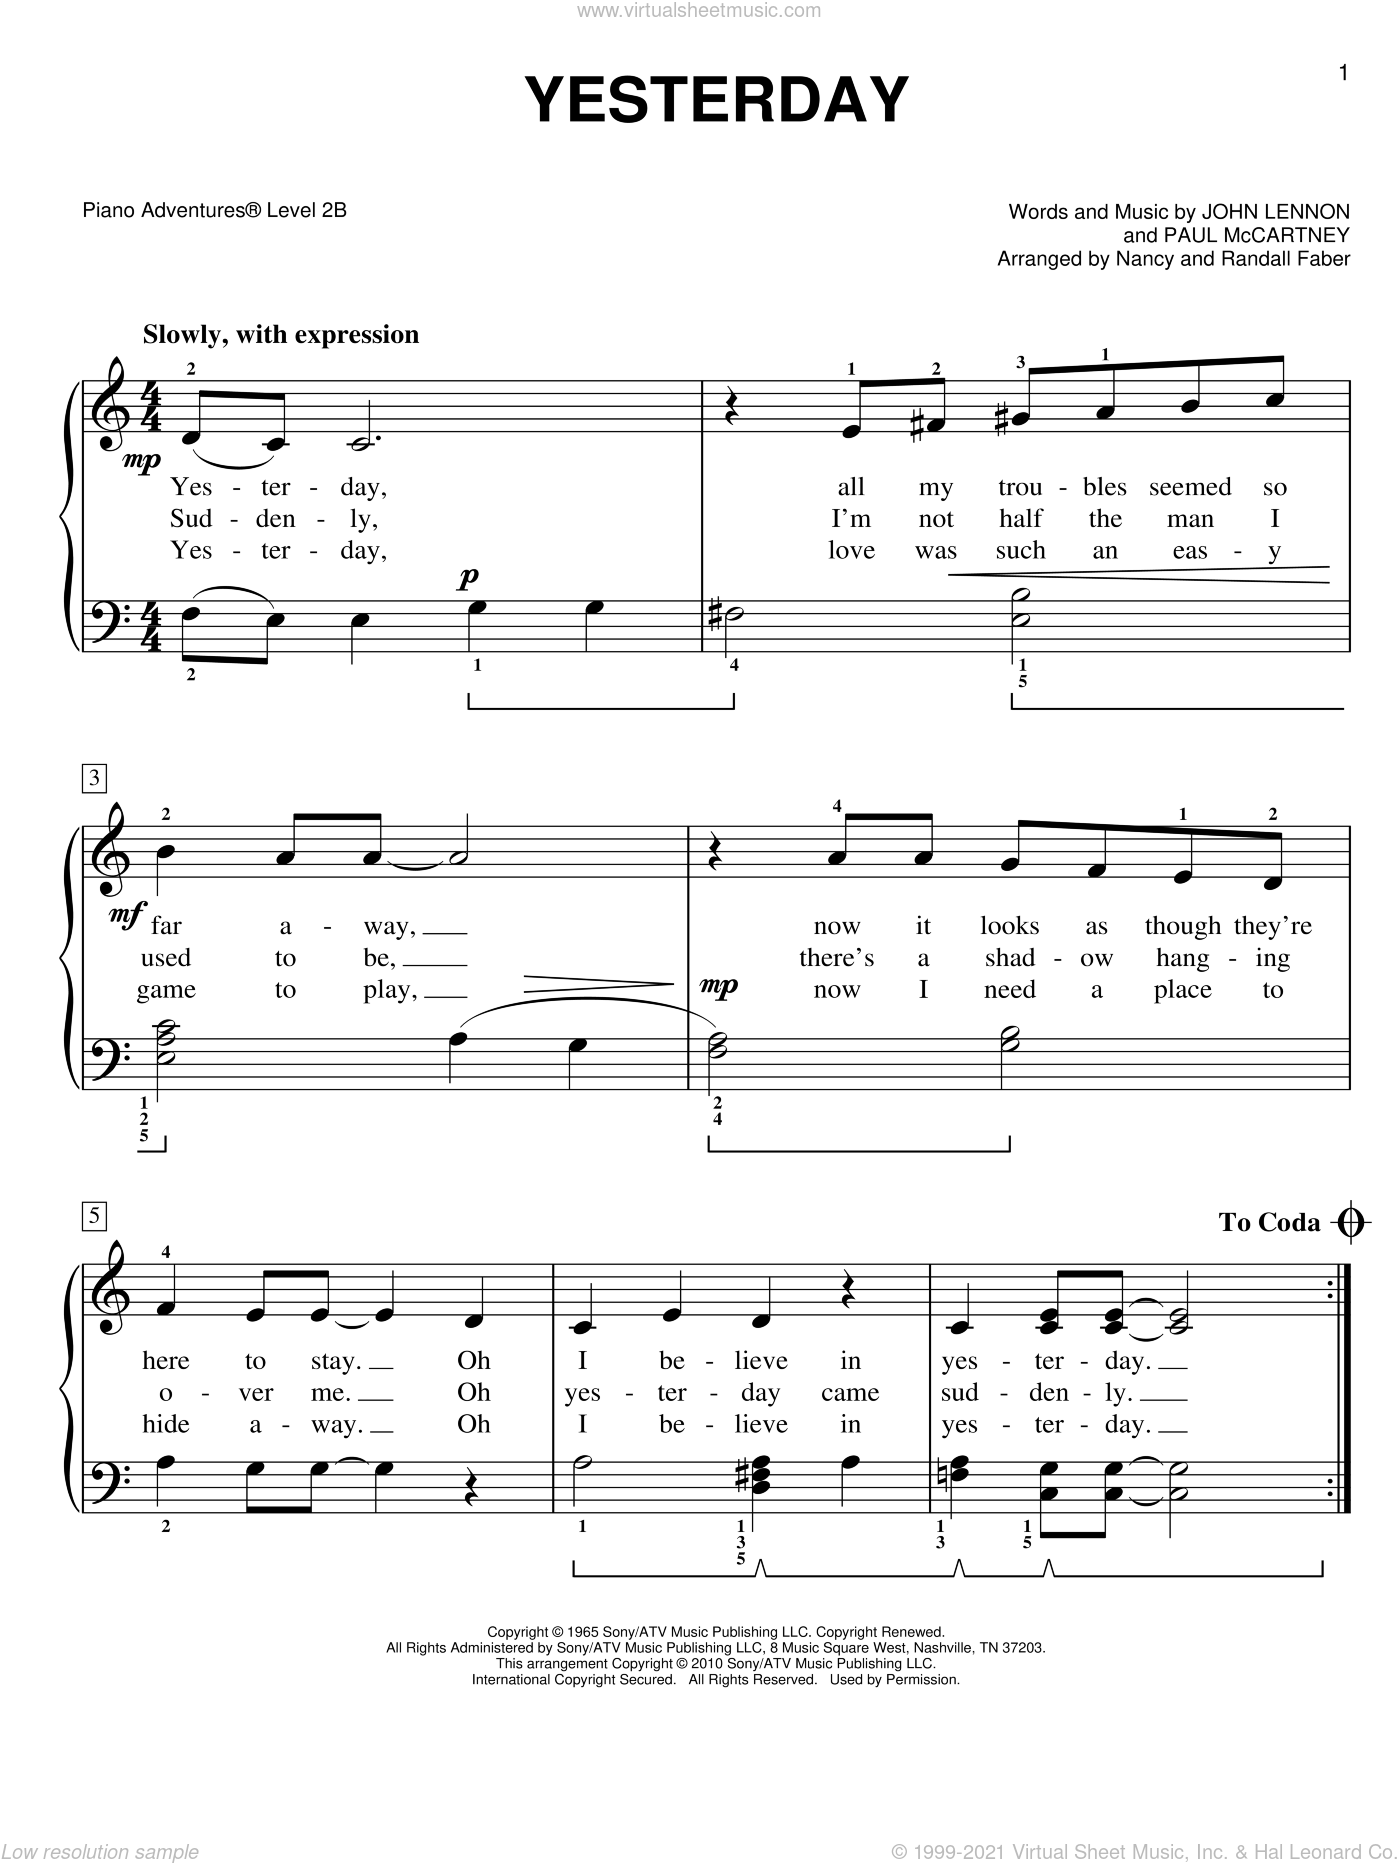 Yesterday sheet music for piano solo by The Beatles, John Lennon and Paul McCartney and Nancy and Randall Faber, intermediate/advanced skill level